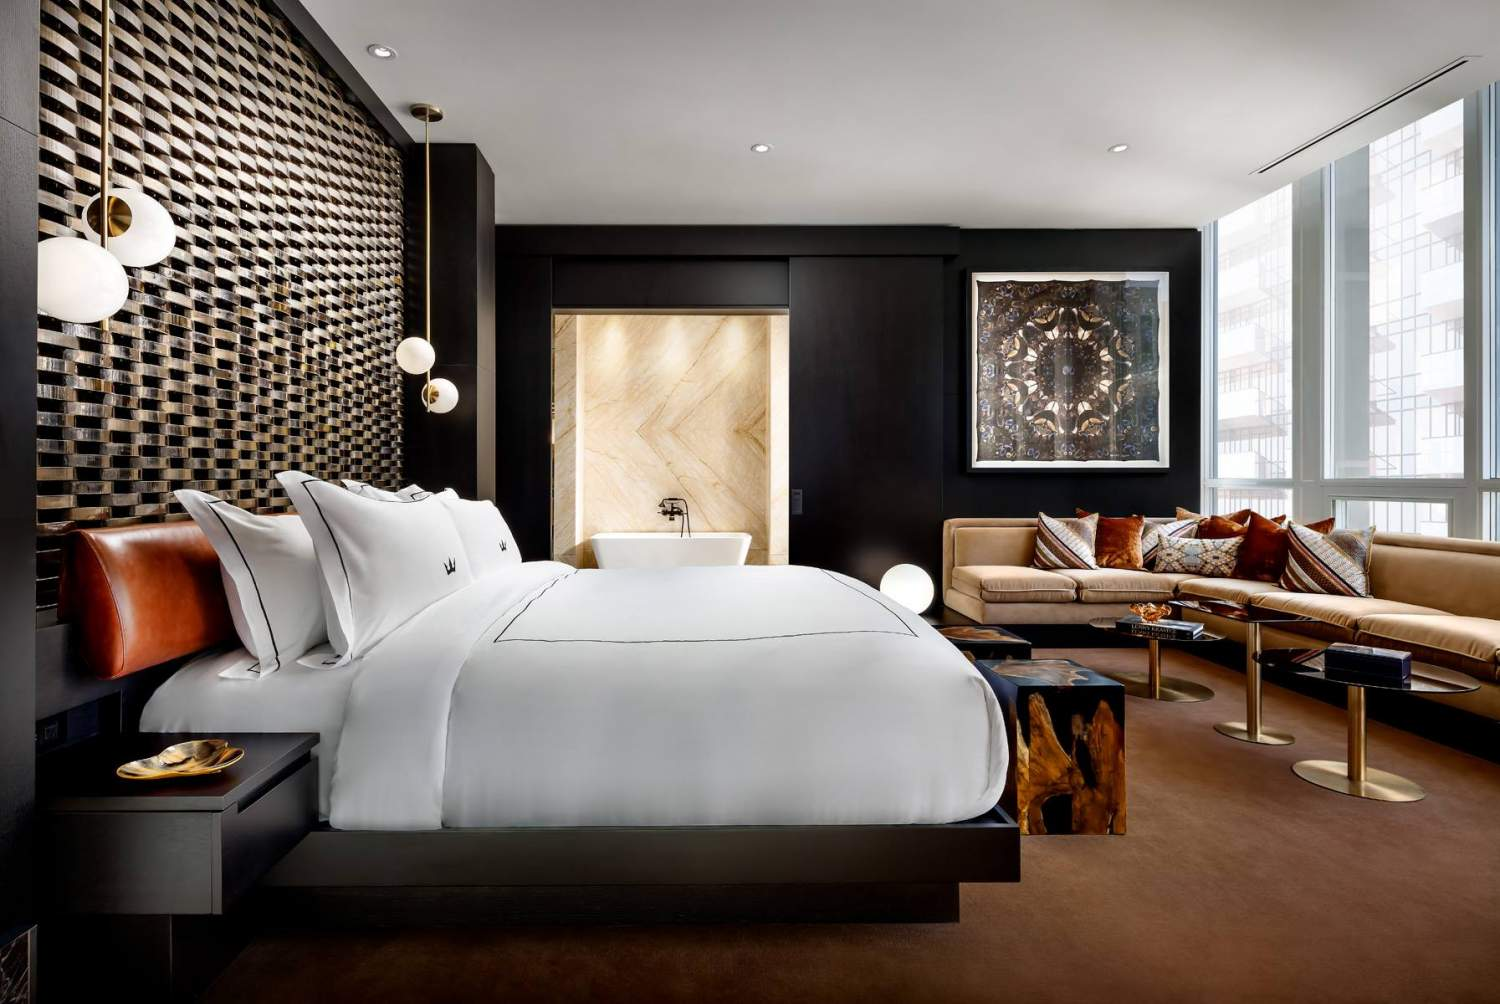 Bisha boutique-hotel in Toronto